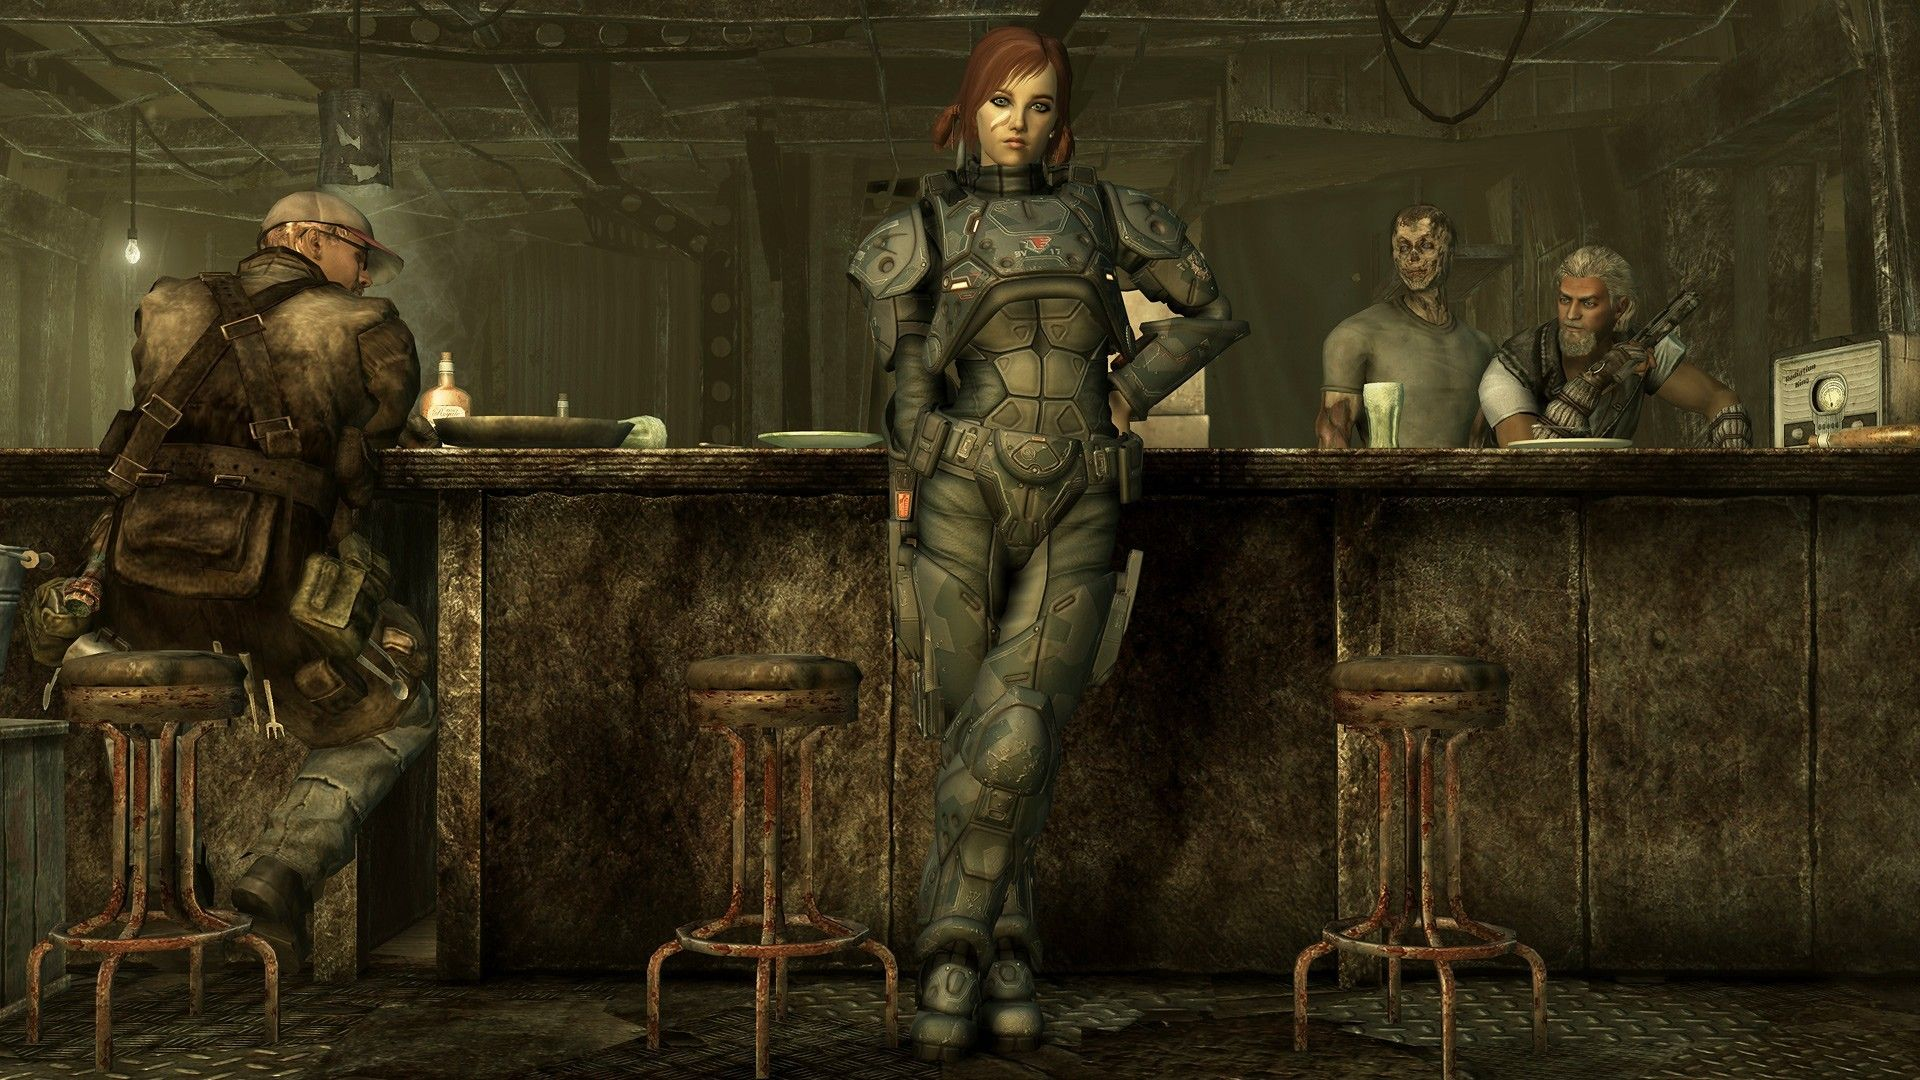 Fallout 3 Hd Desktop Wallpapers > Flip Wallpapers